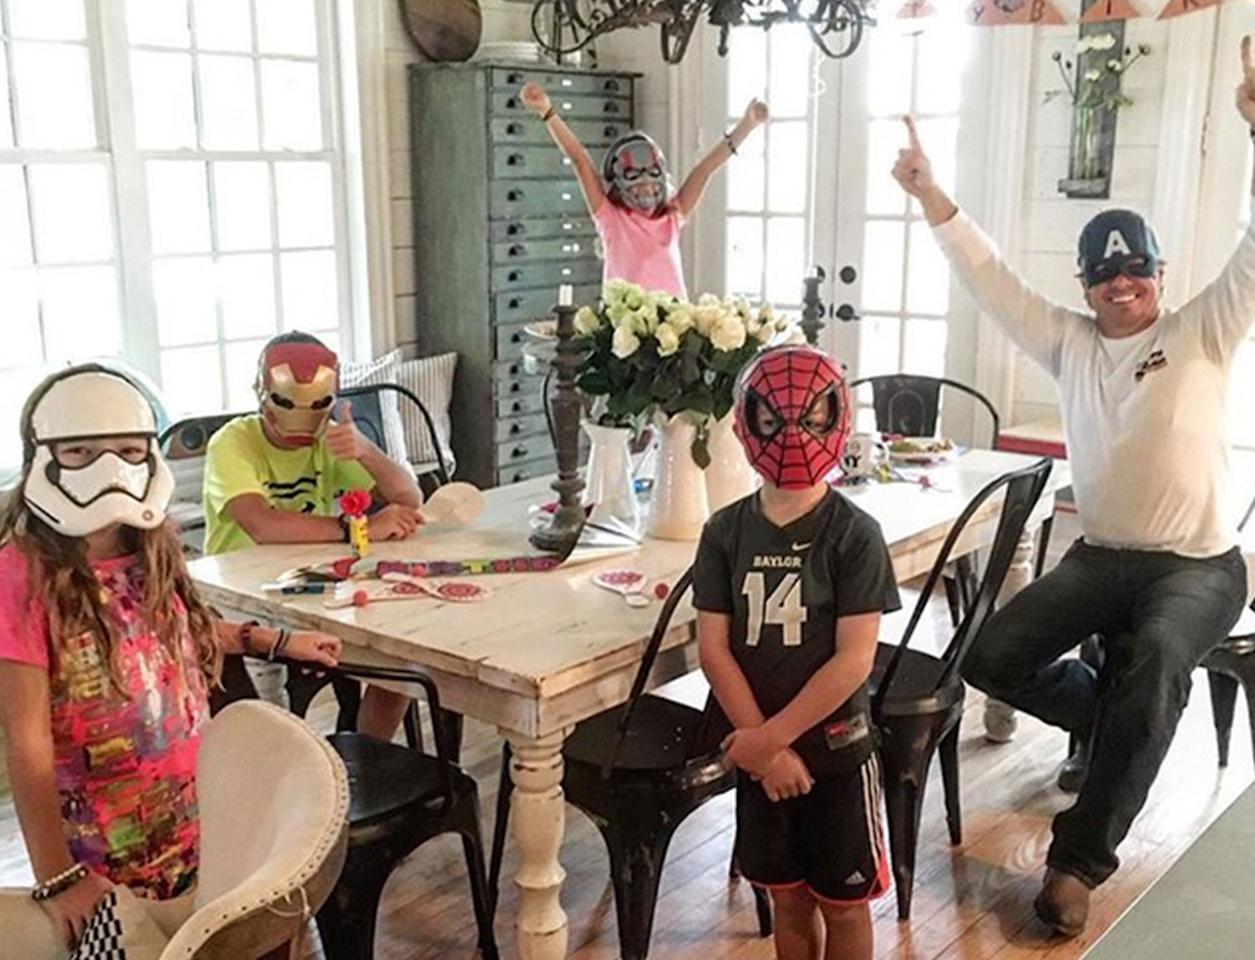 "<p>But, as it turns out, they're heroes, too. ""The best birthday surprise was waking up to the most amazing bkfst and a room full of all my favorite superheroes,"" Joanna wrote on this spirited family shot.</p>"